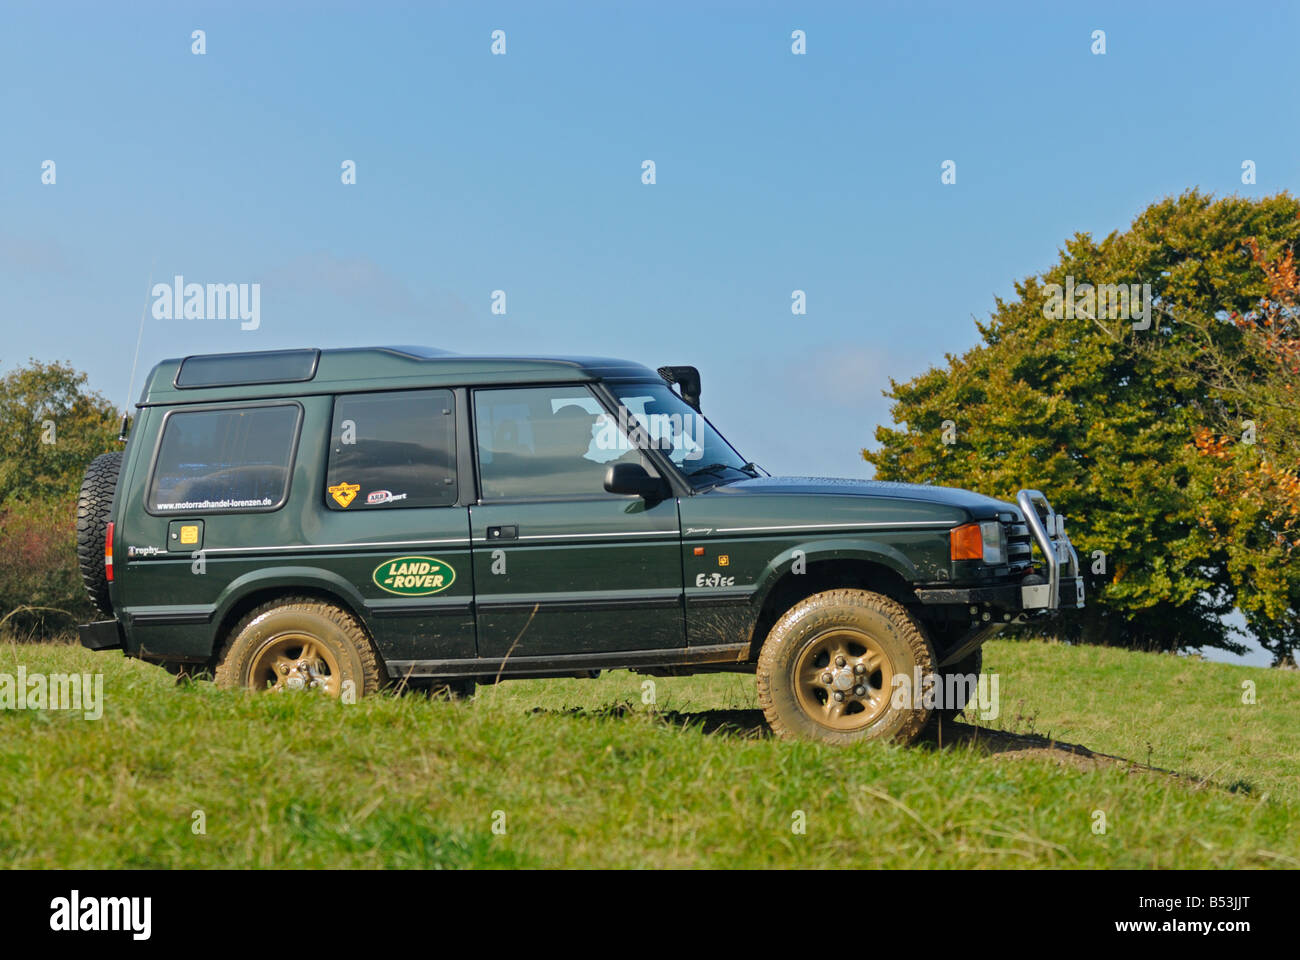 1990s Land Rover Discovery 1 on a forest track in the hilly Weserbergland. - Stock Image